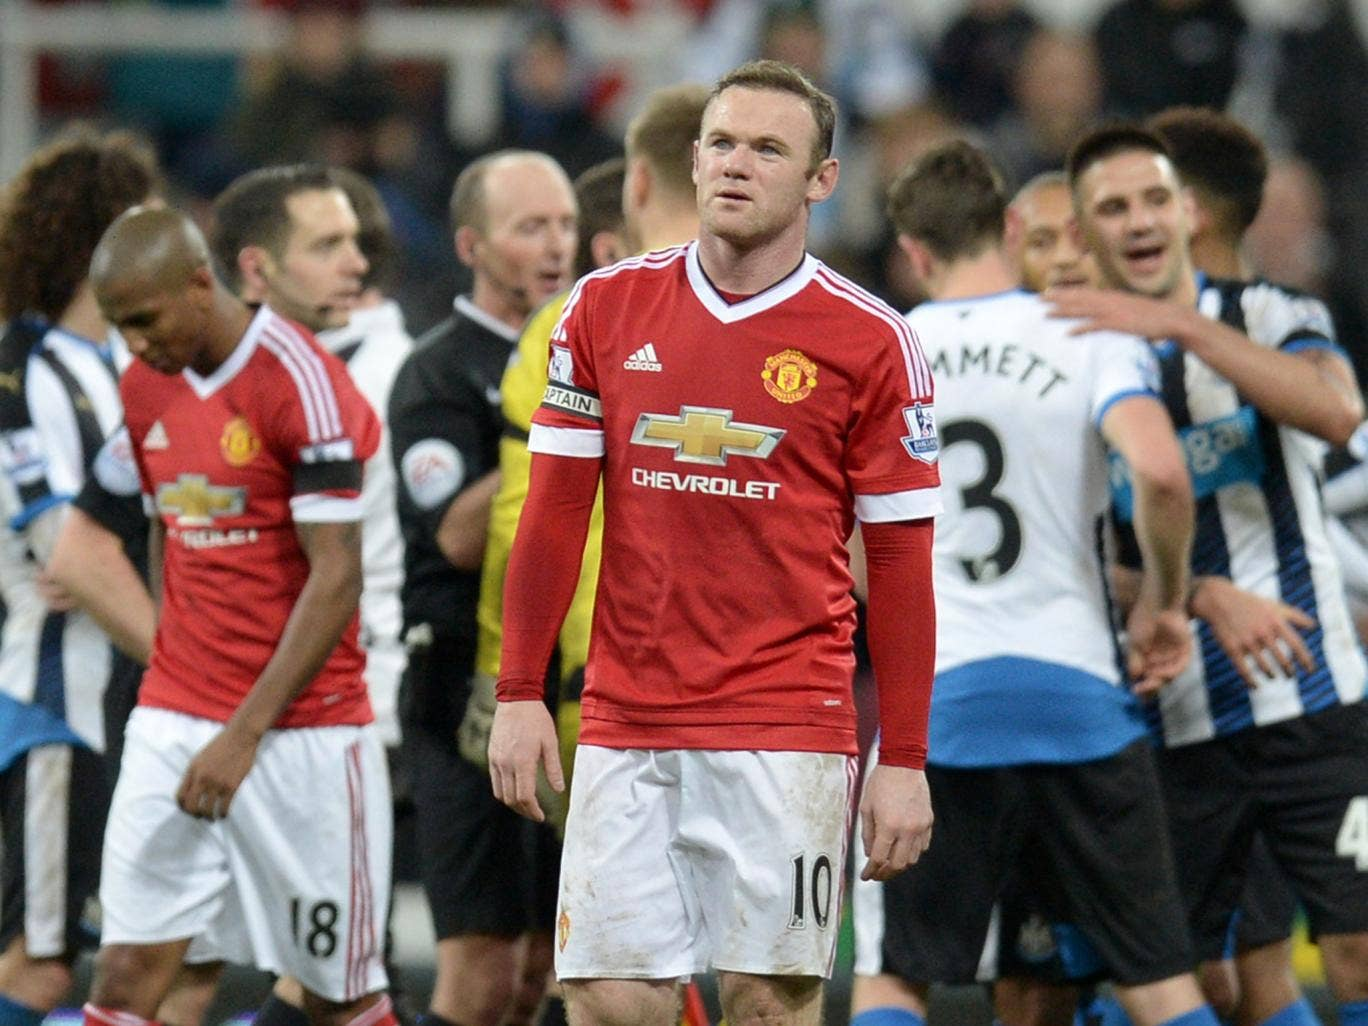 Manchester United striker Wayne Rooney looks on after his side drop two points